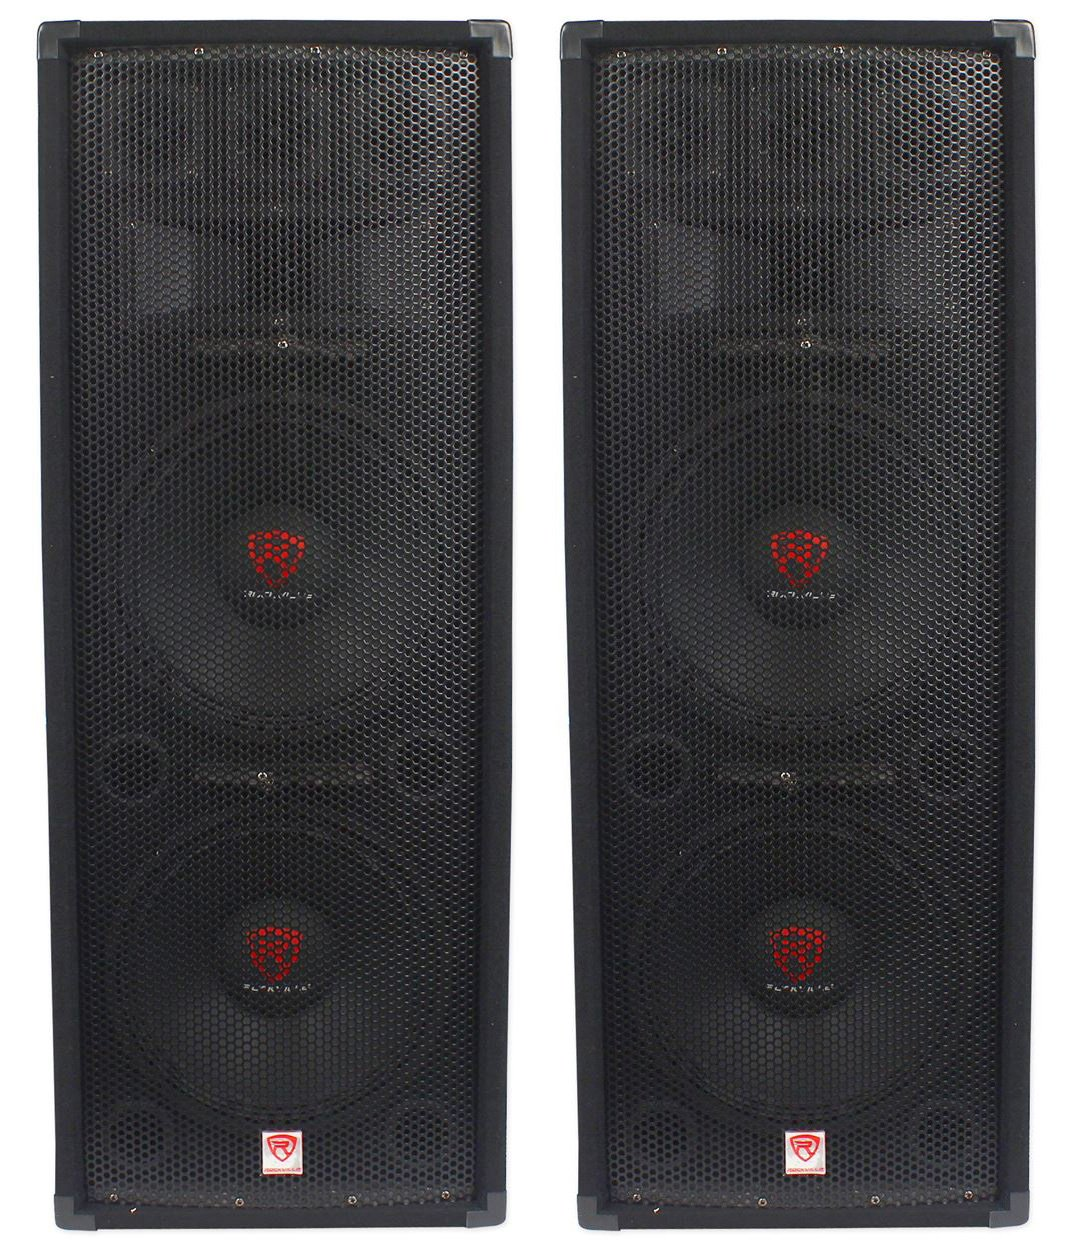 Rockville RSG12 28 8 Ohm Passive Speakers